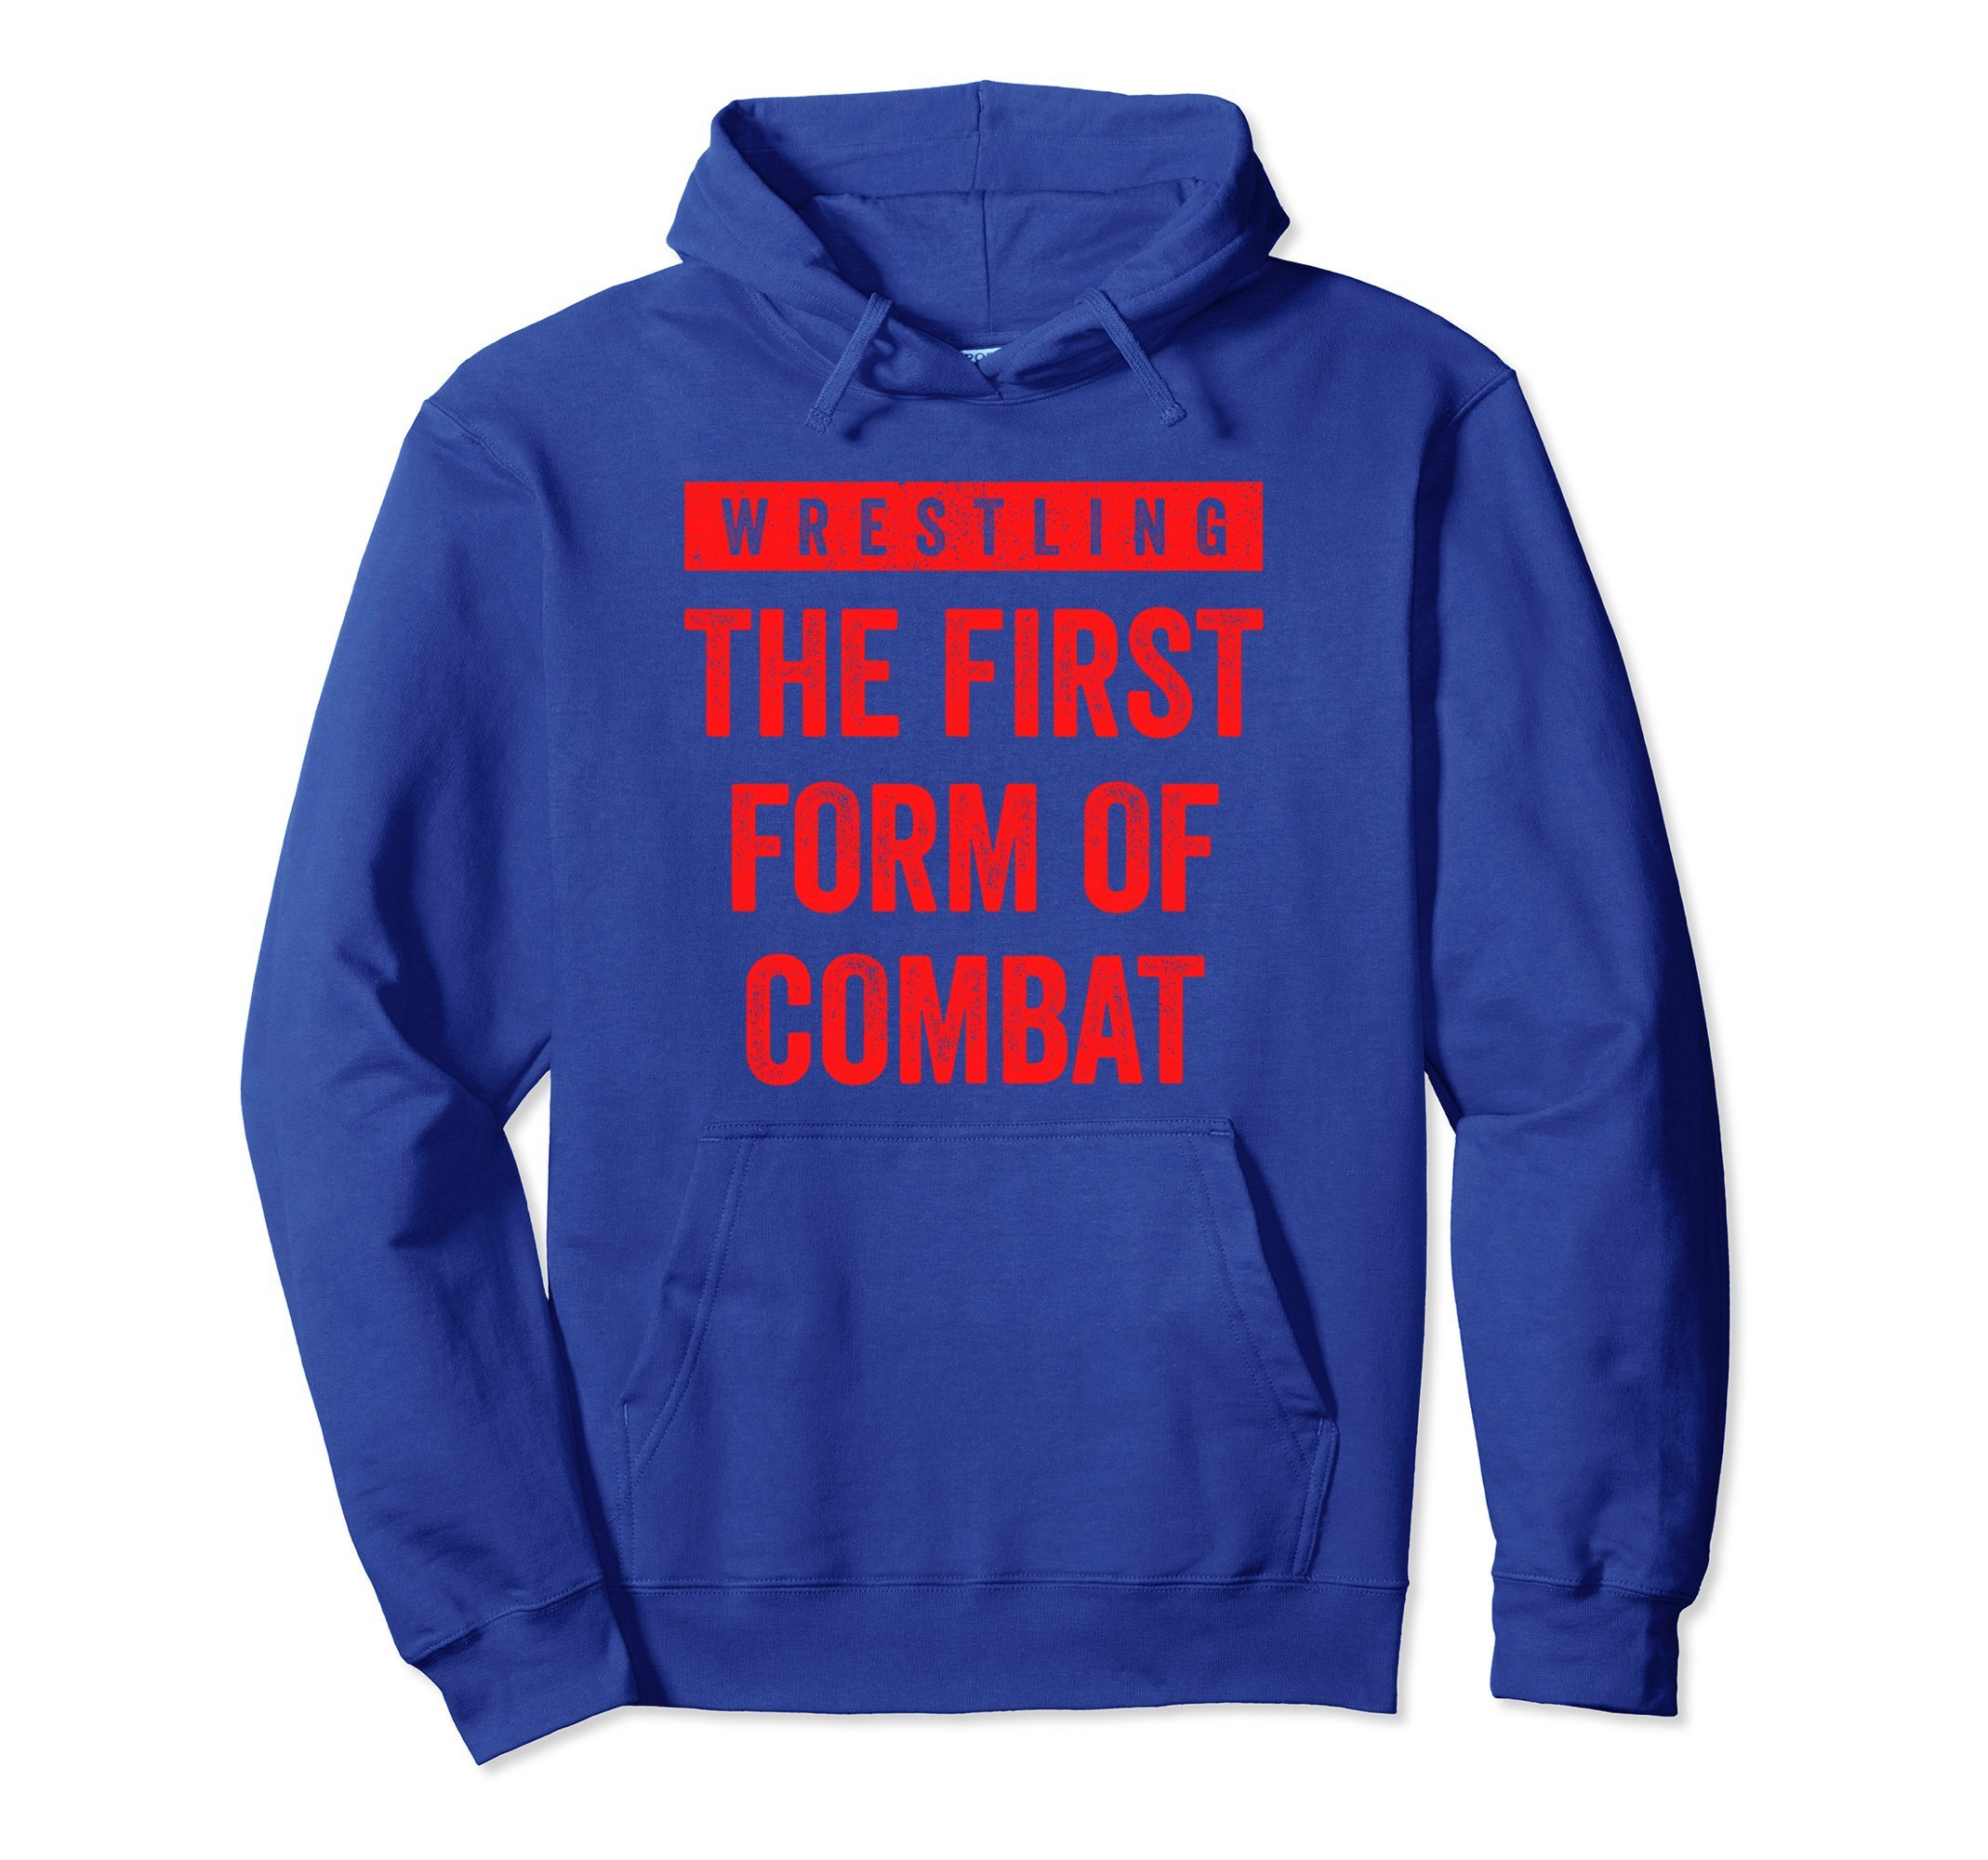 Unisex Wrestling First Form of Combat Hoodie for Wrestlers, Red 2XL Royal Blue by Wrestling Shirts and Wrestling Shoes